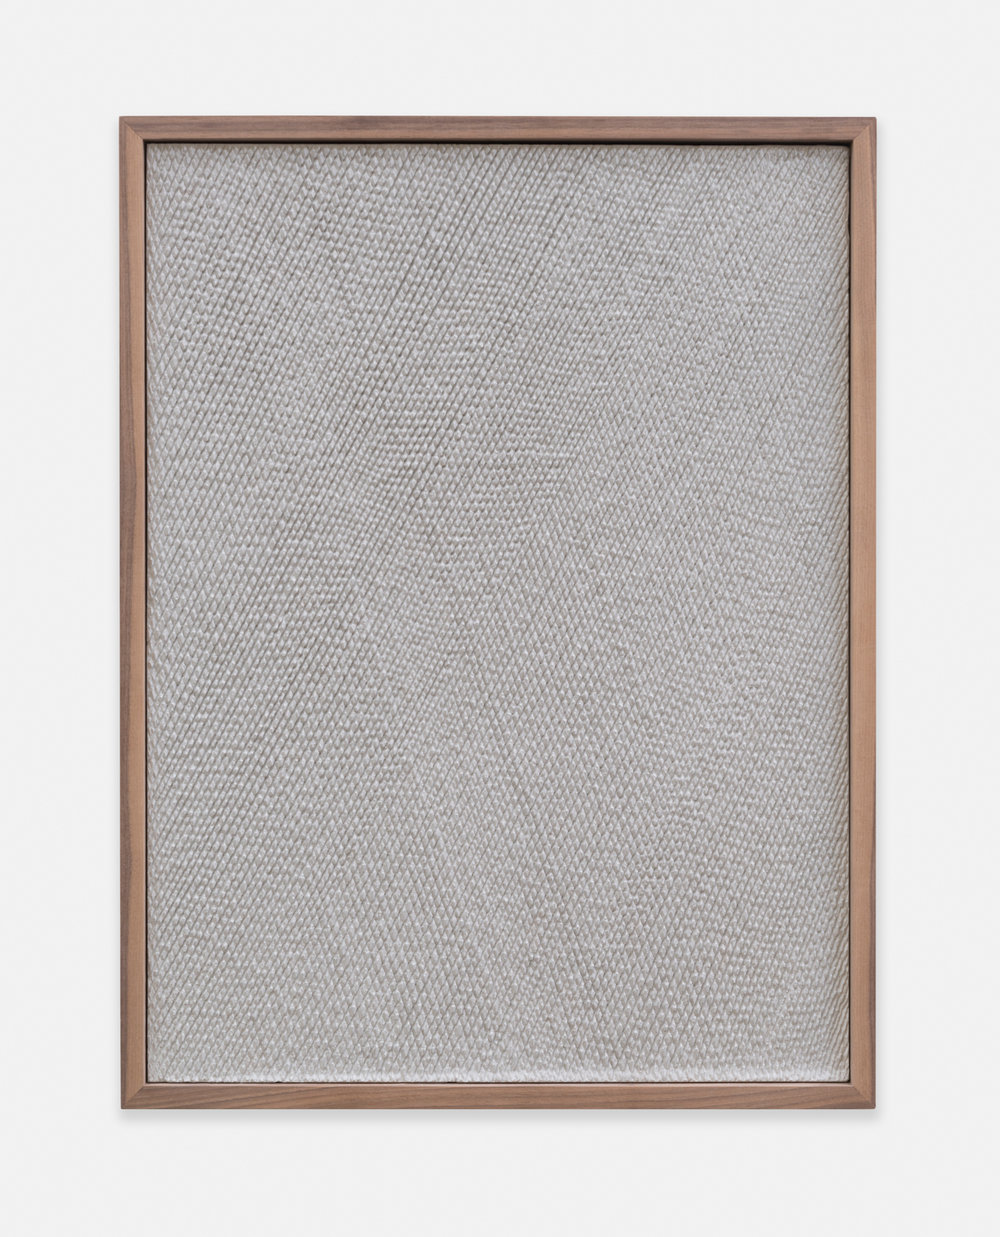 Anthony Pearson  Untitled (Etched Plaster)  2014 Pigmented hydrocal in walnut frame 24 ½h 18 ½w x 2 ¼d in AP365